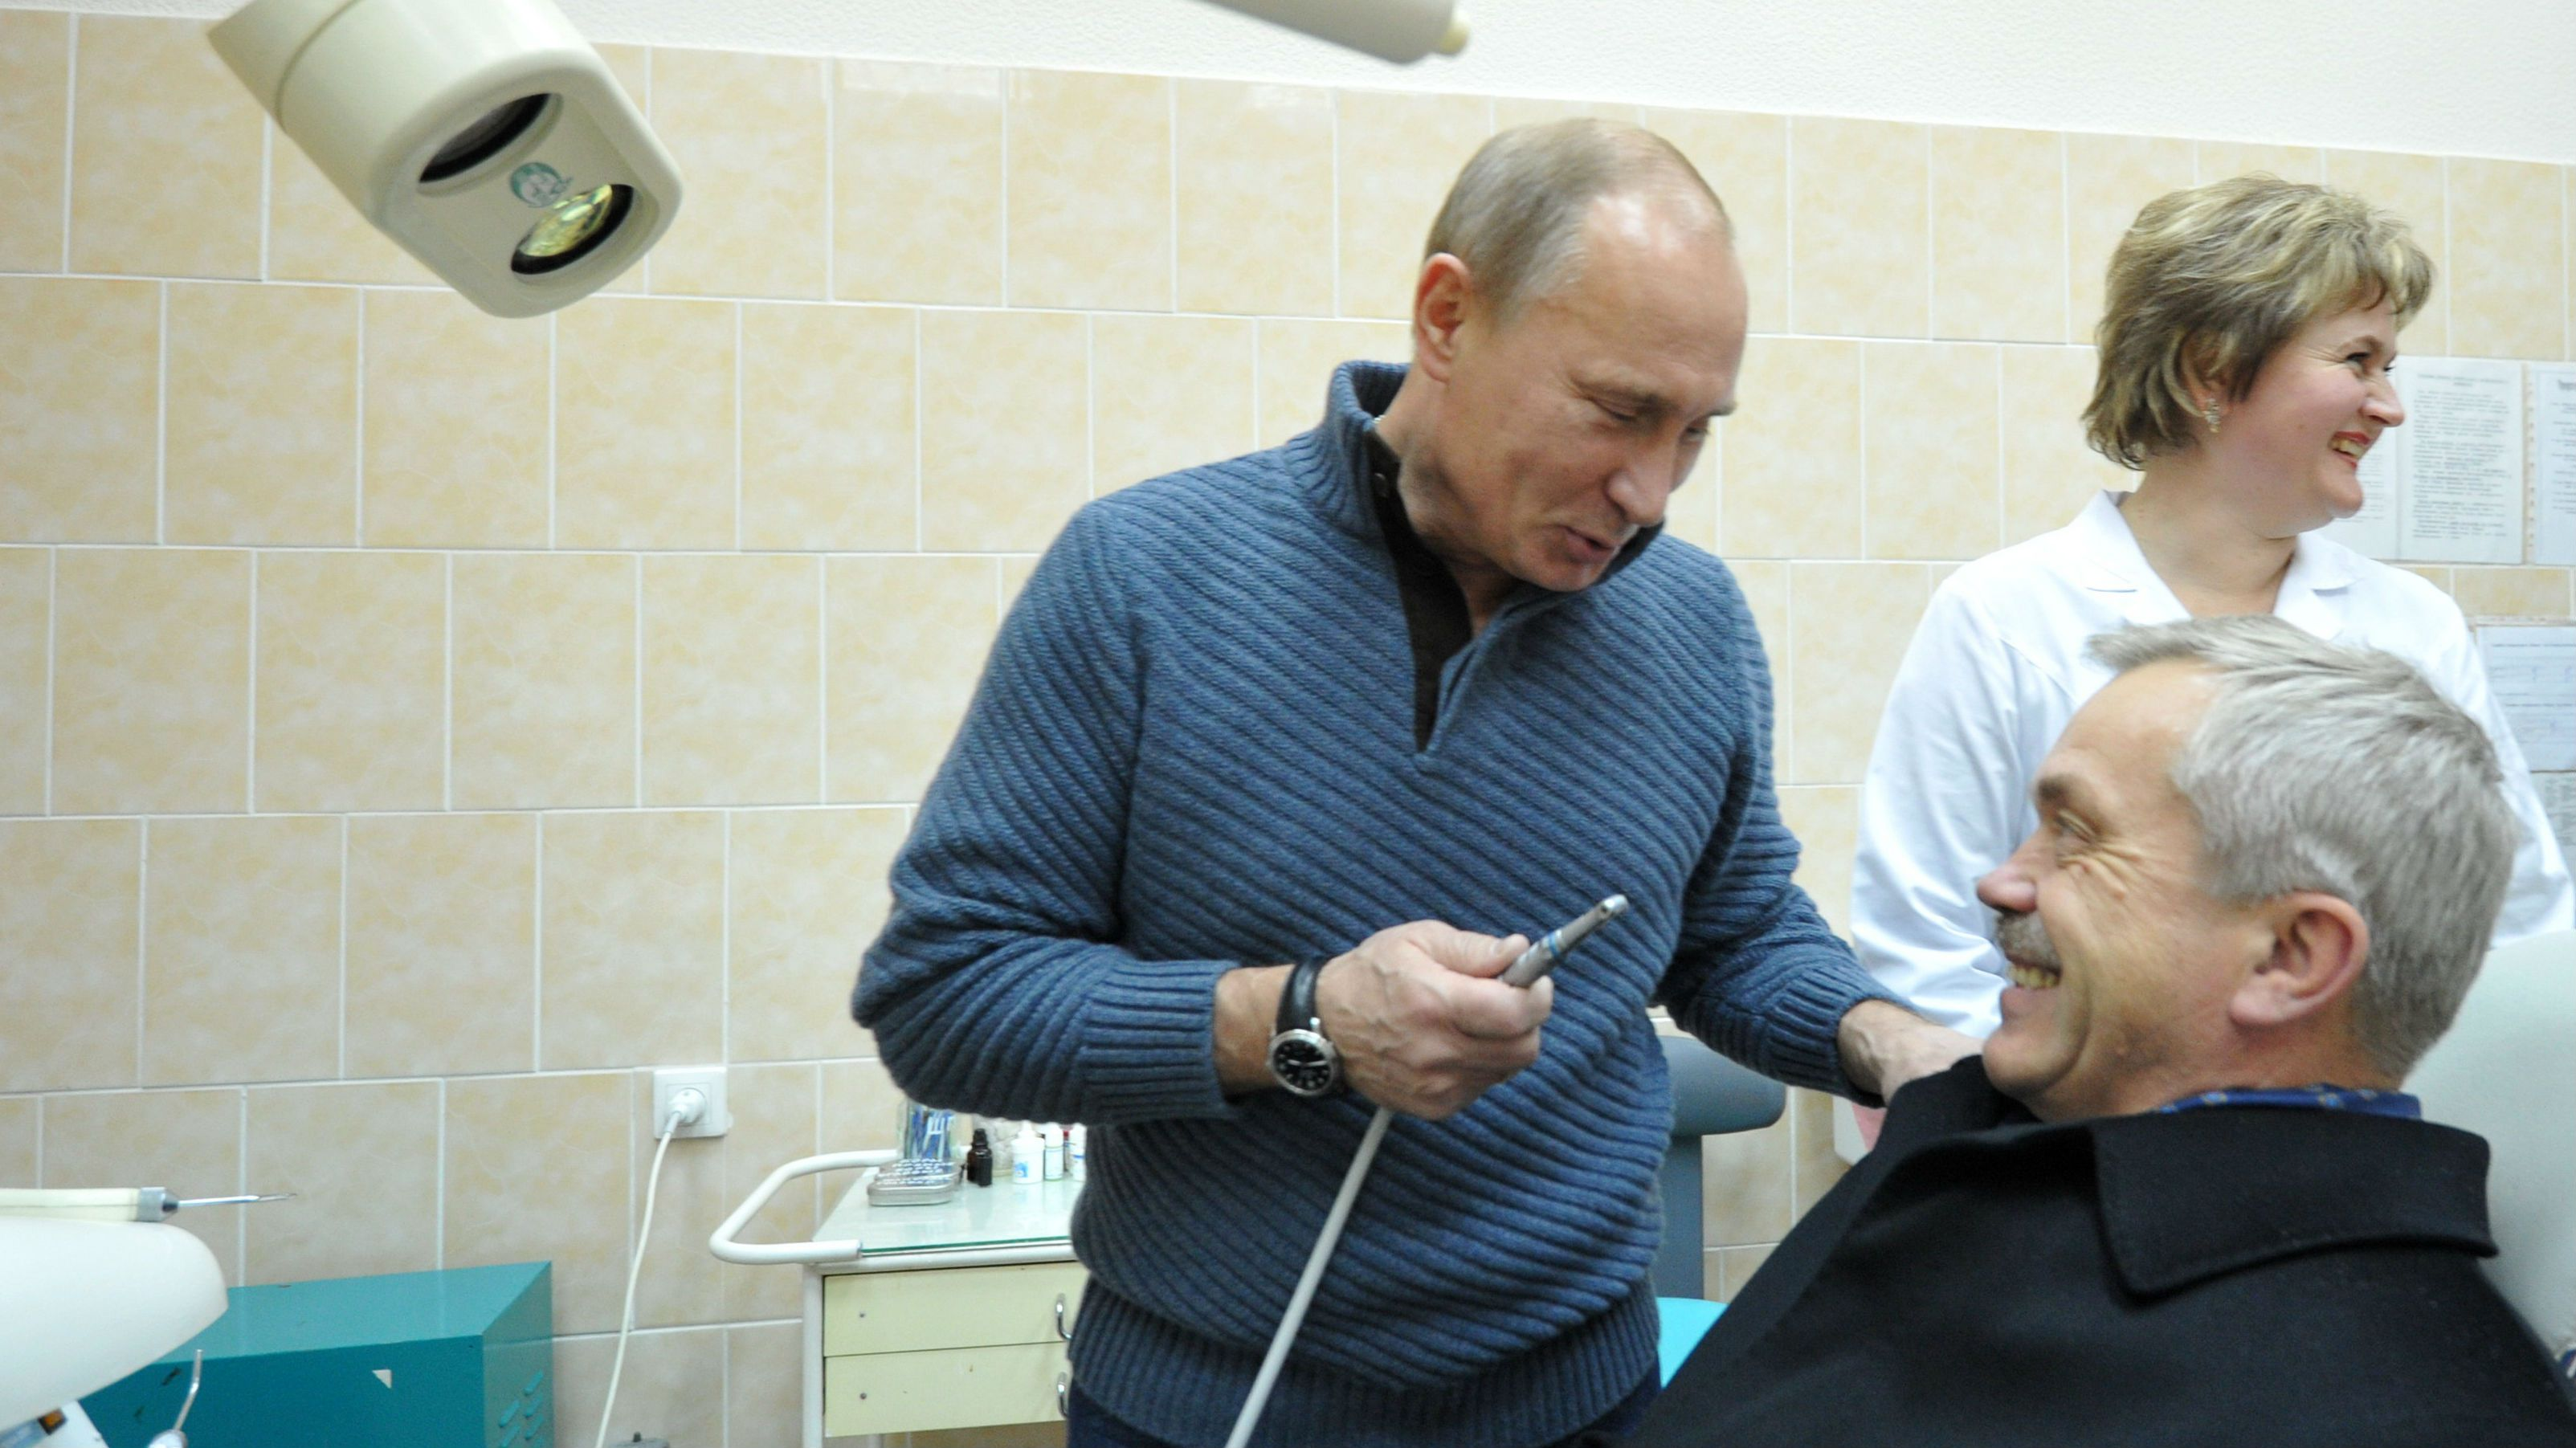 Russian Prime Minister Vladimir Putin, left, talks with Belgorod Region Governor Yevgeny Savchenko in a dental department while visiting a hospital in the town of Graivoron outside Belgorod, about 630 kilometers (400 miles) south of Moscow, Tuesday, Nov. 15, 2011. In the background is hospital head doctor Tatyana Savchenko. (AP Photo/RIA Novosti, Alexei Nikolsky, Pool)